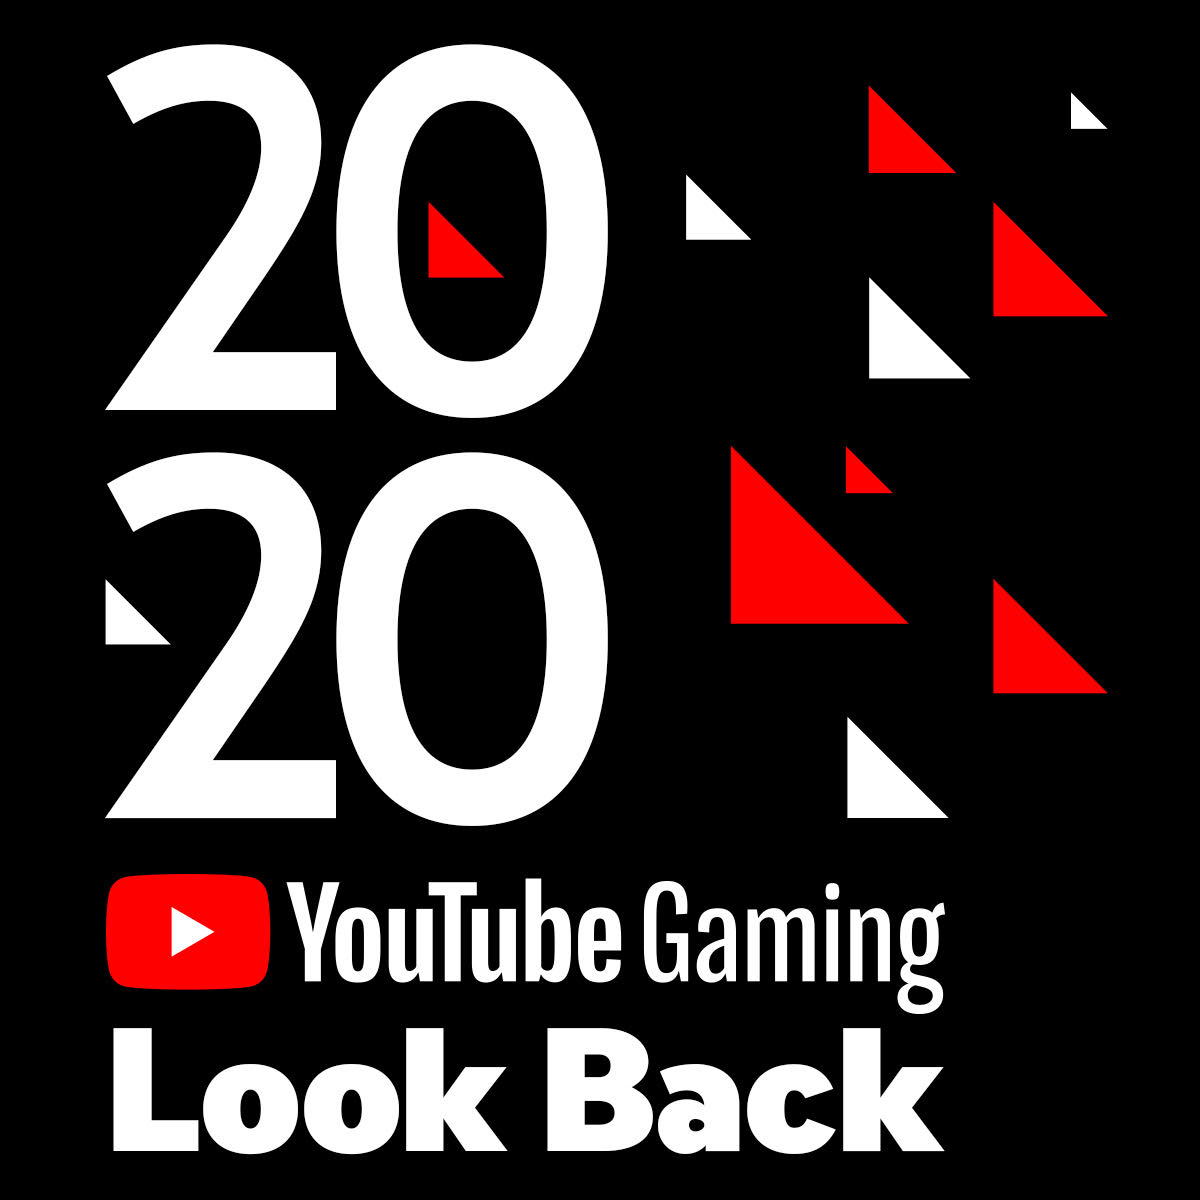 2020 is YouTube Gaming's biggest year, ever: 100B watch time hours